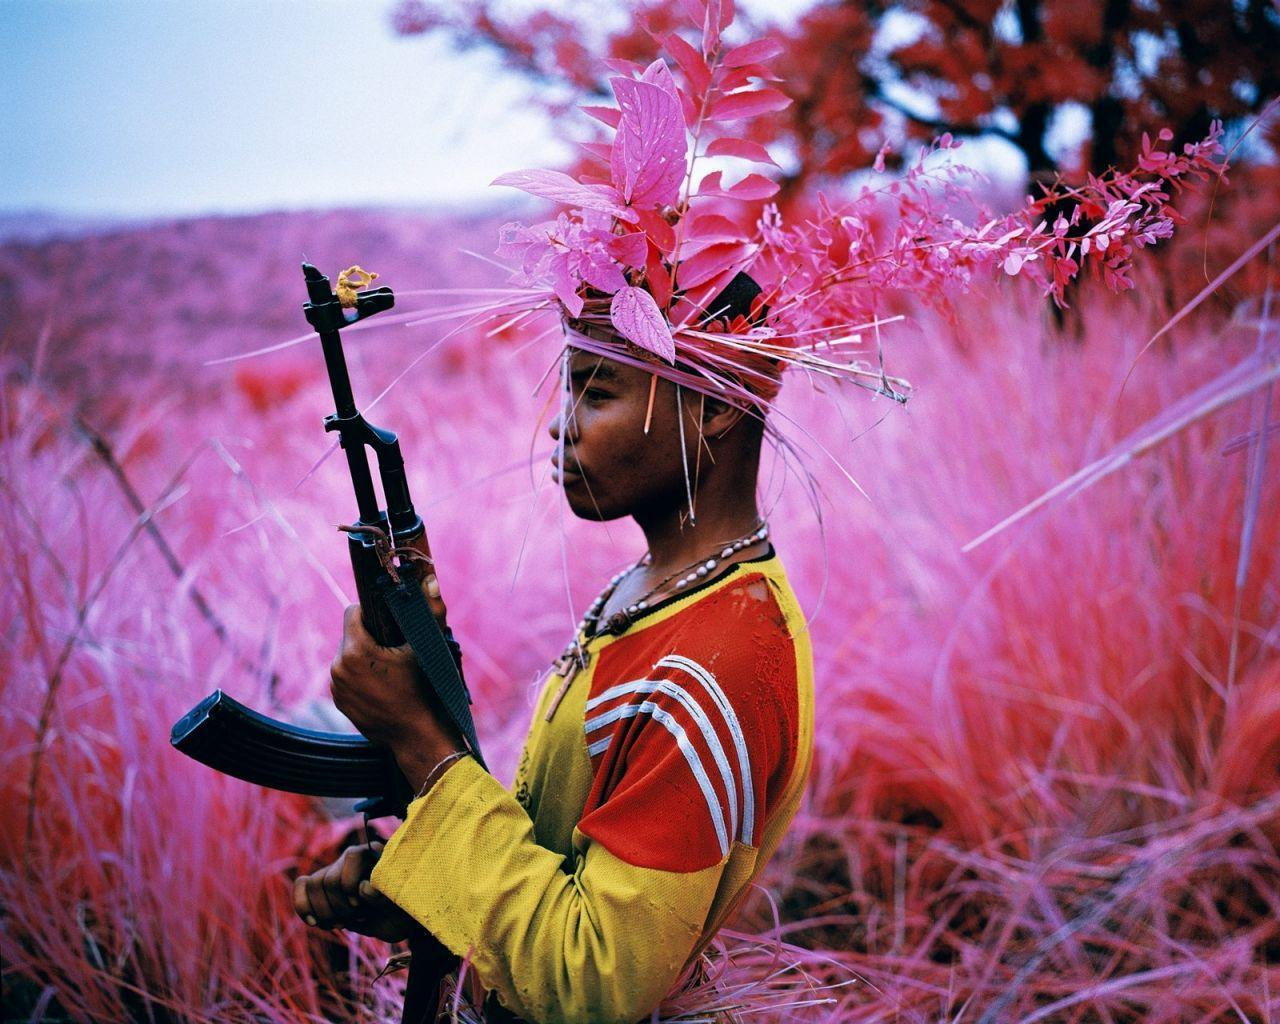 Richard Mosse - The Enclave